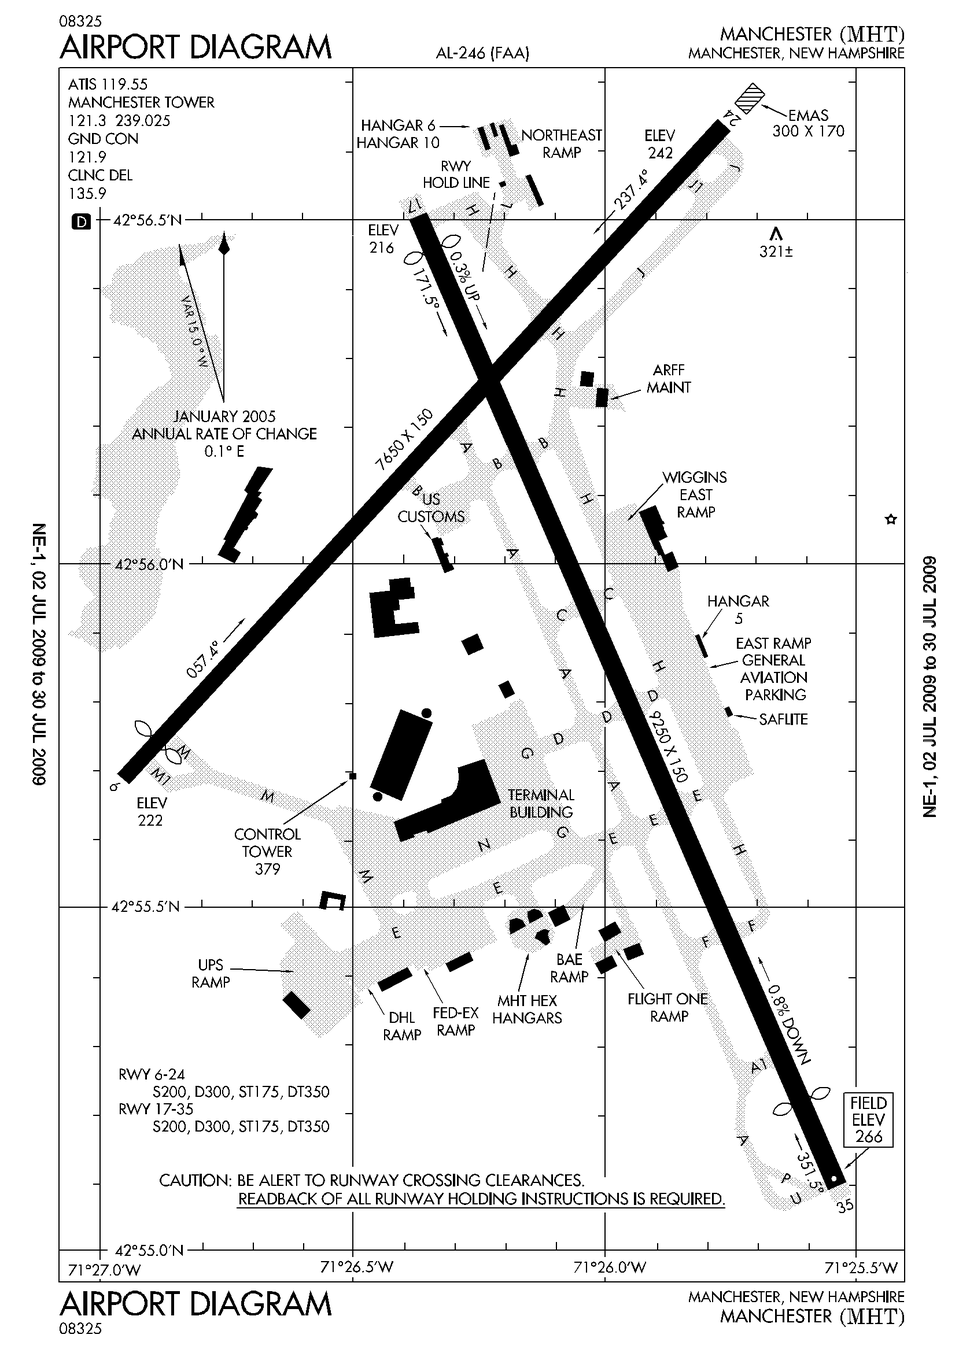 KMHT Airport Diagram Large